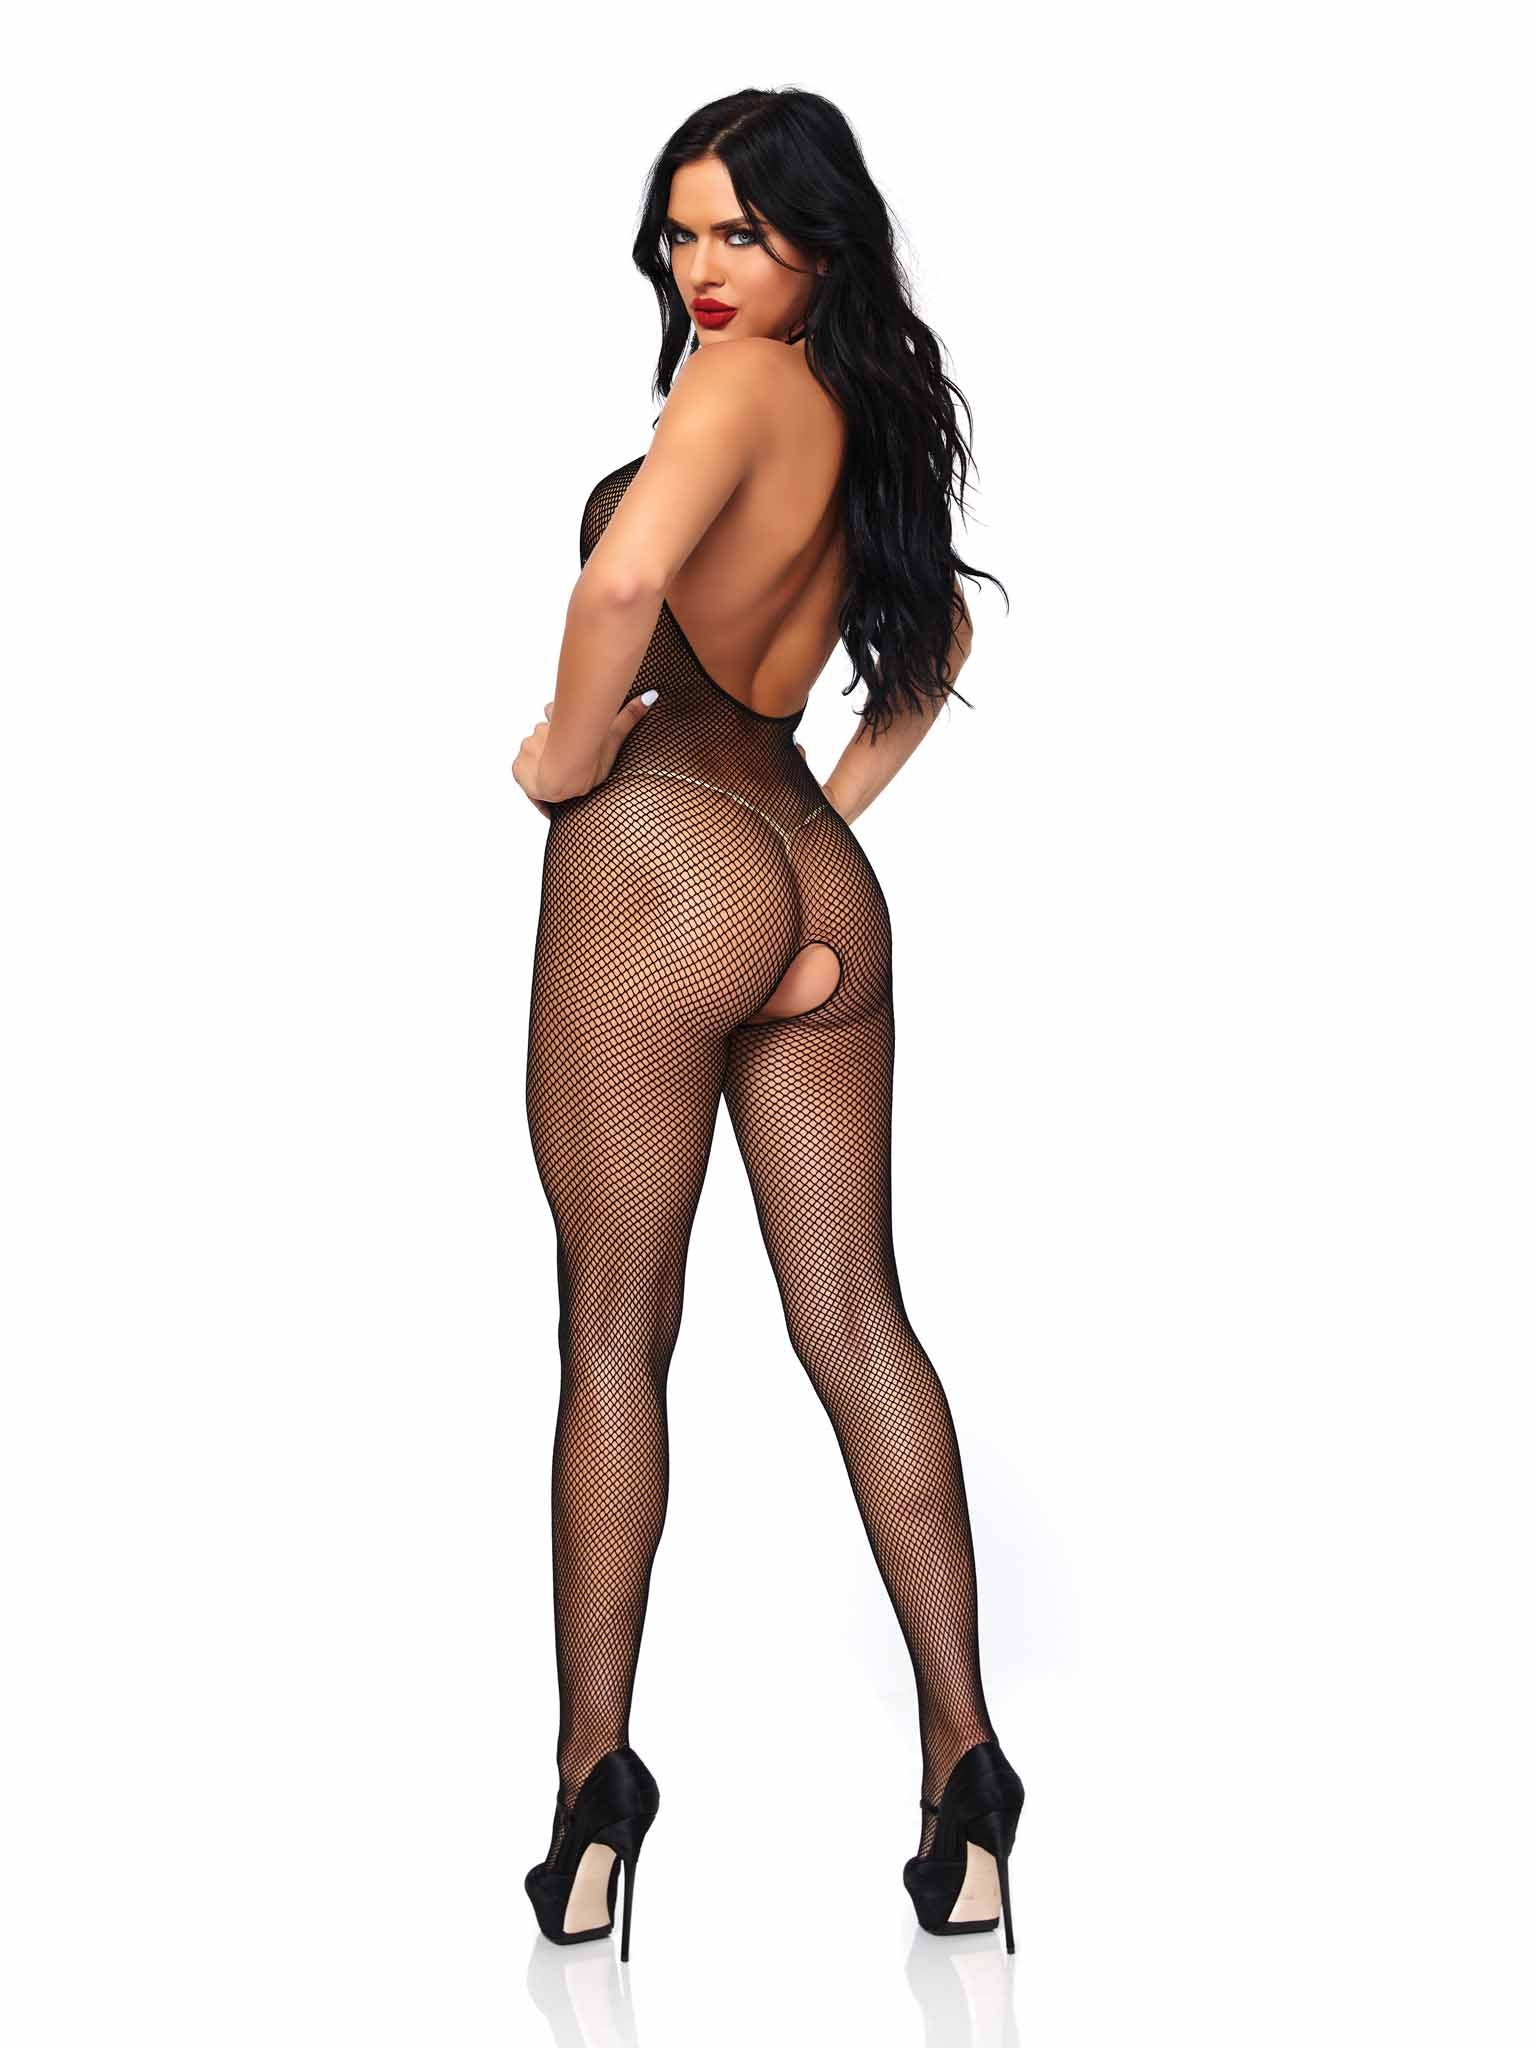 CUPLESS FISHNET BODYSTOCKING